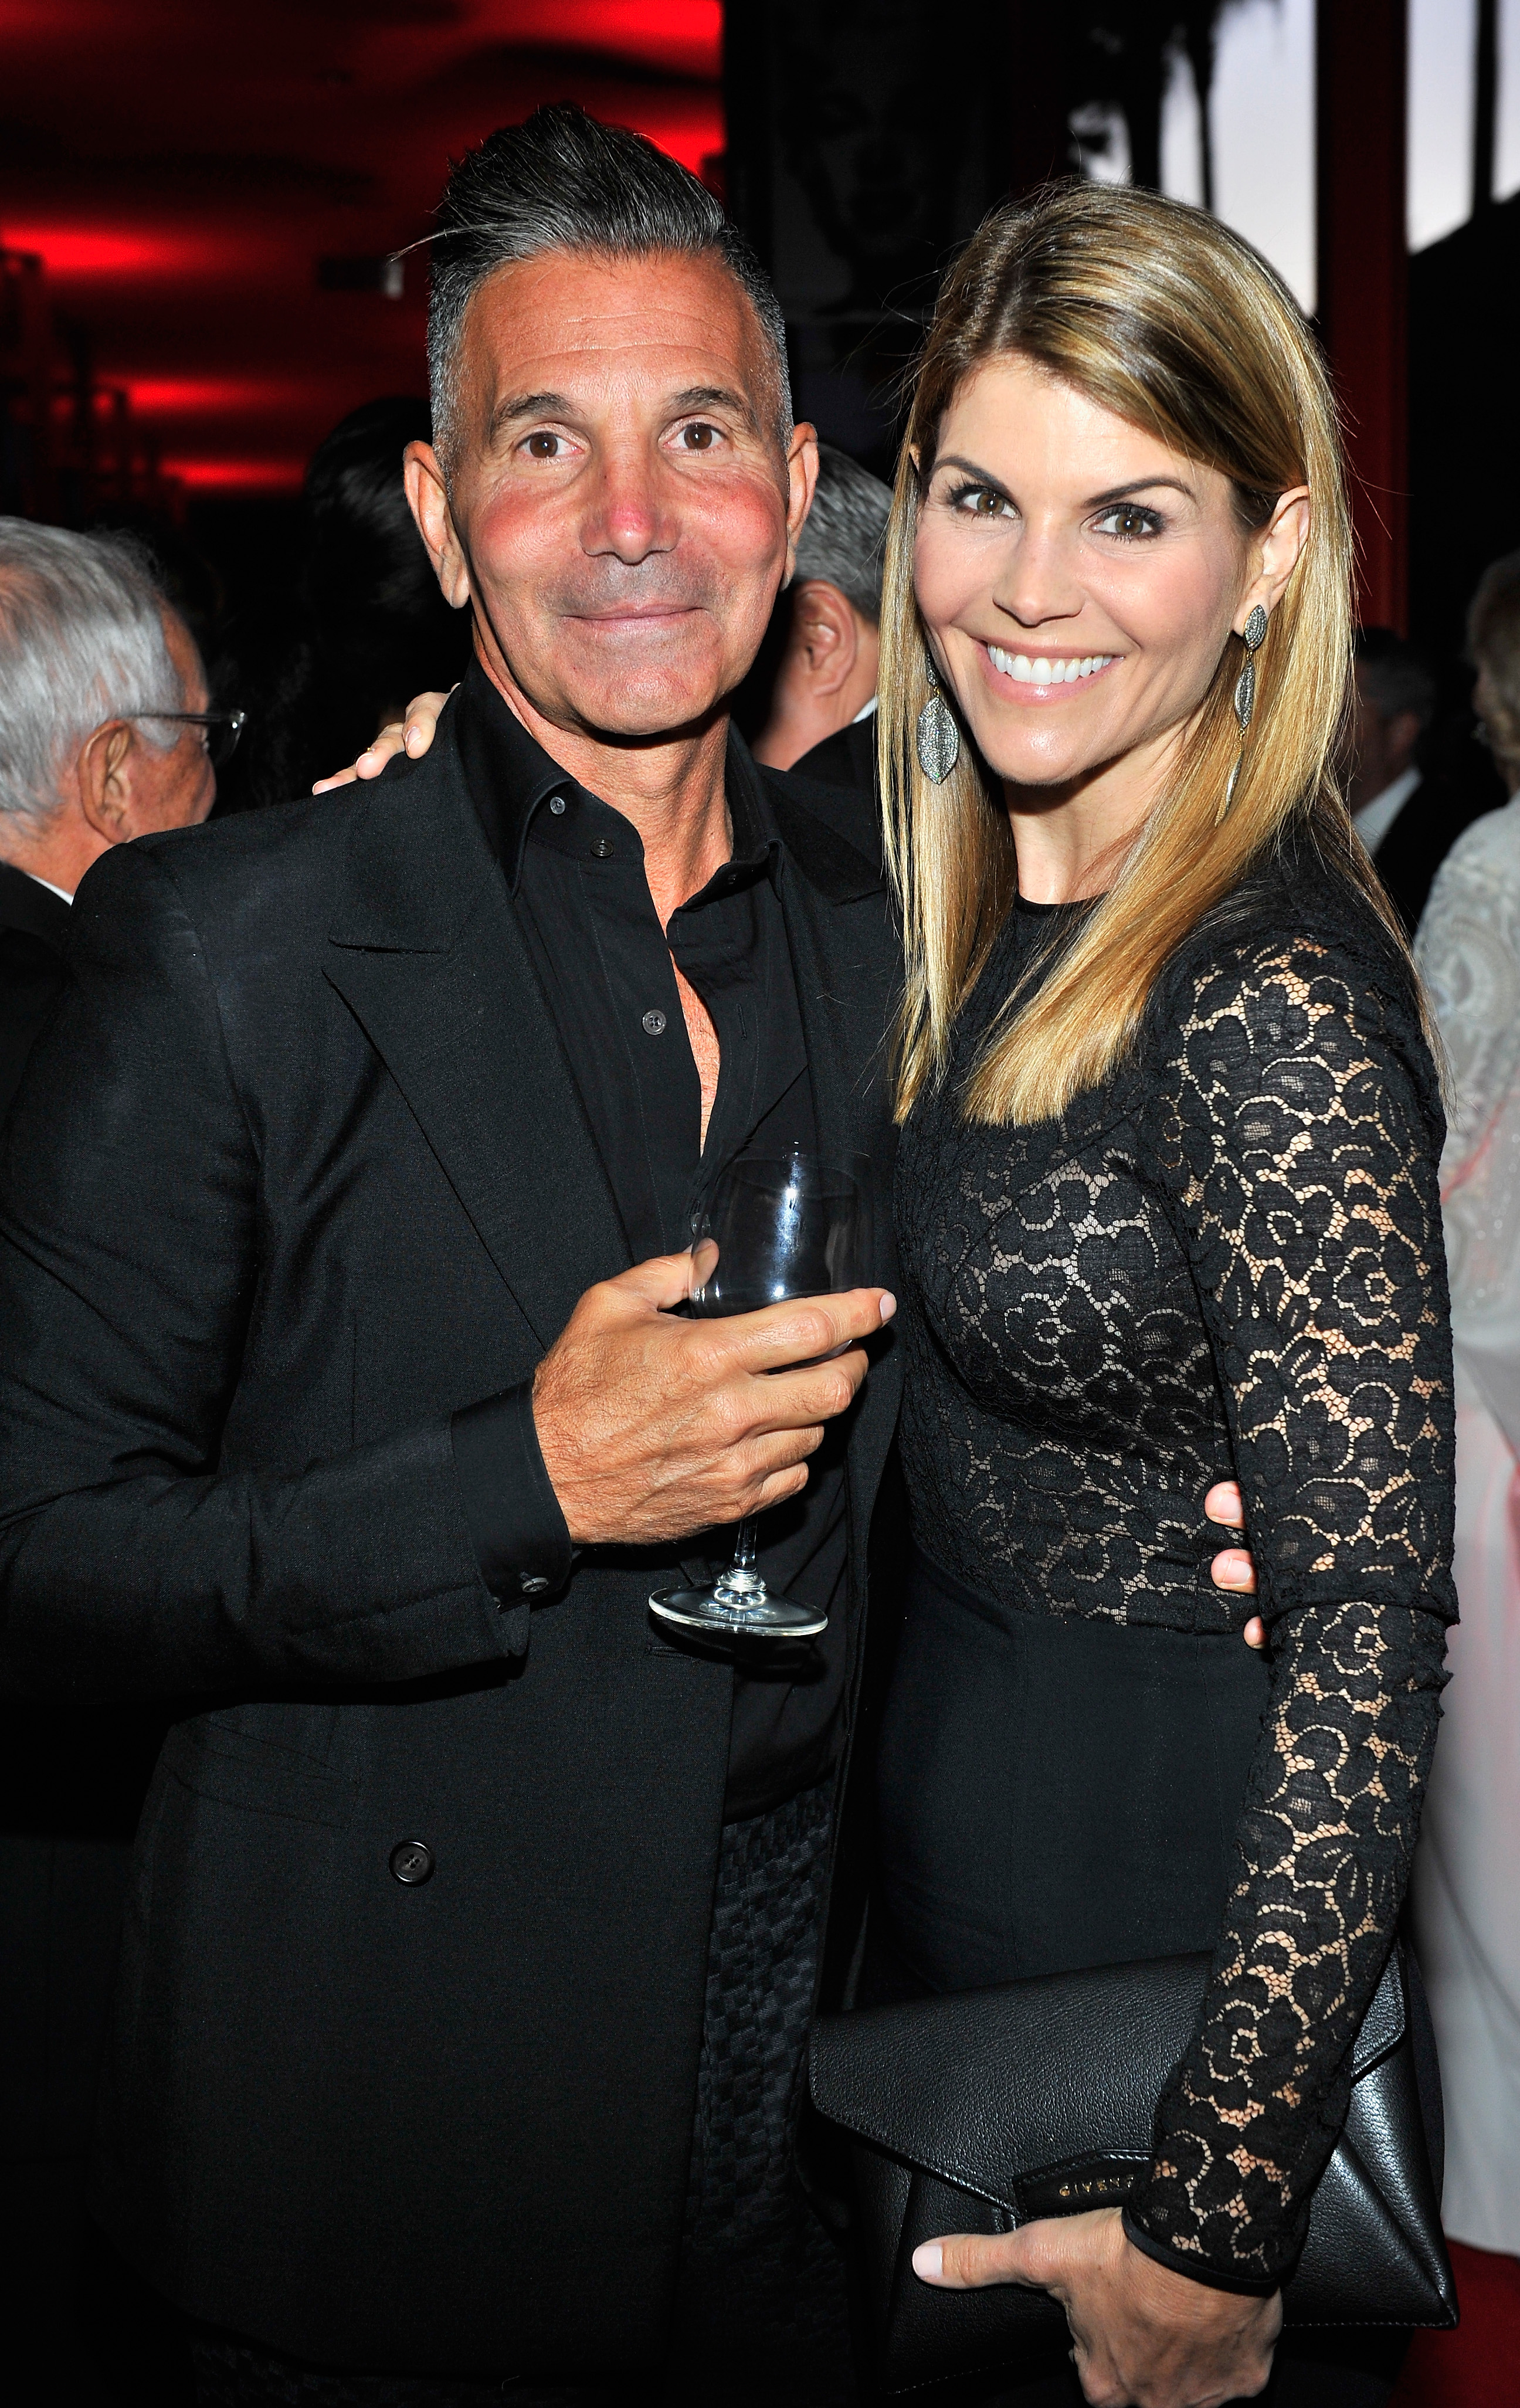 Are Lori Loughlin and Mossimo Giannulli Headed for Divorce?